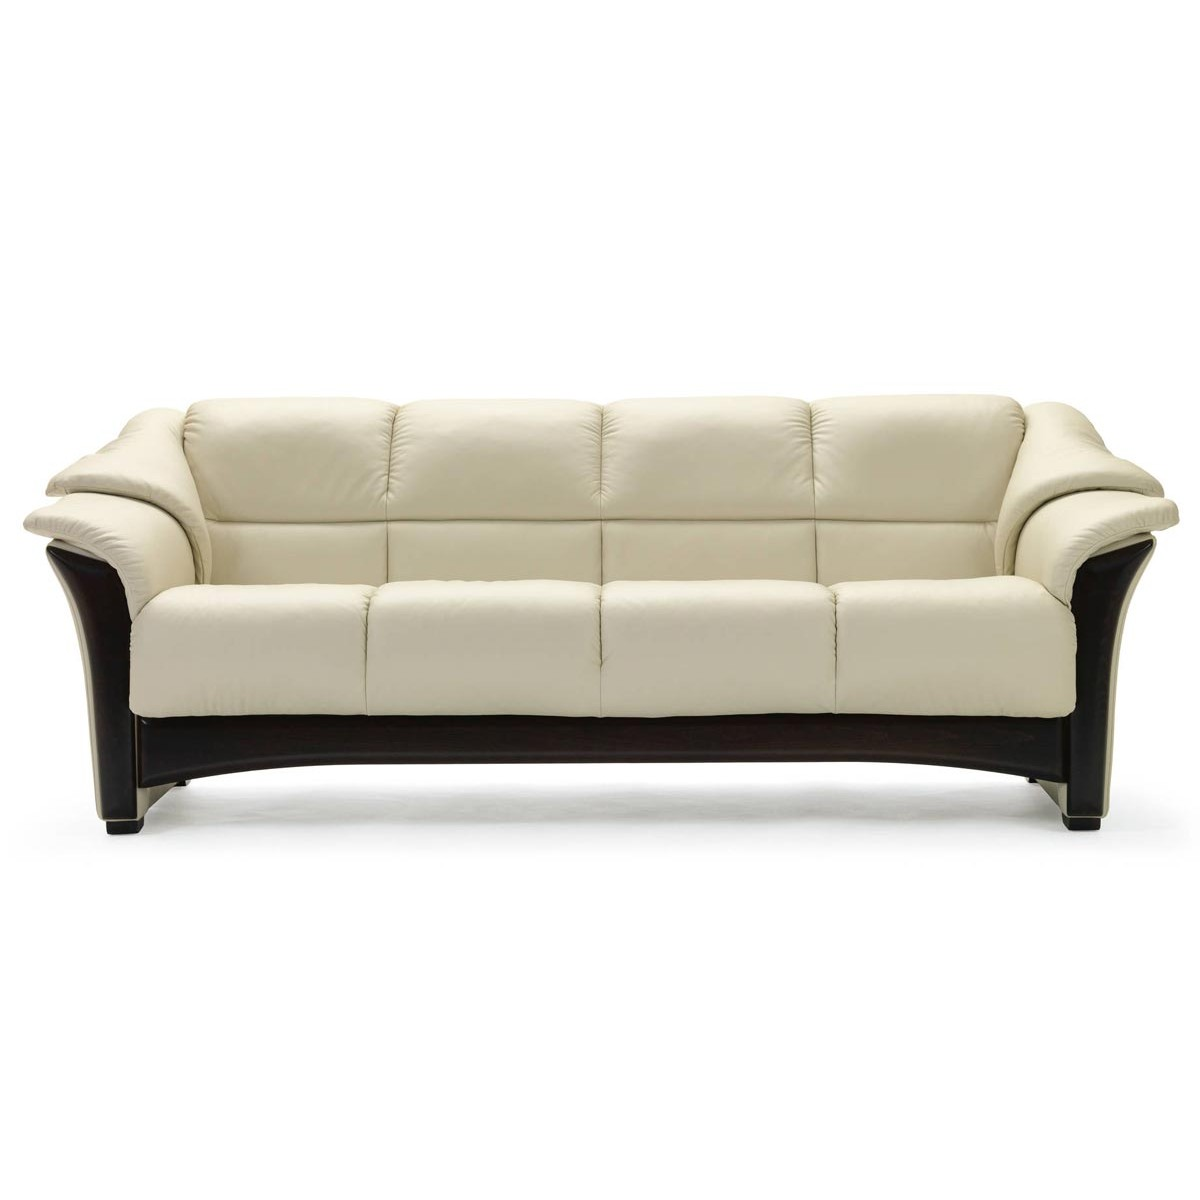 Ekornes Oslo Sofa Wood Trim